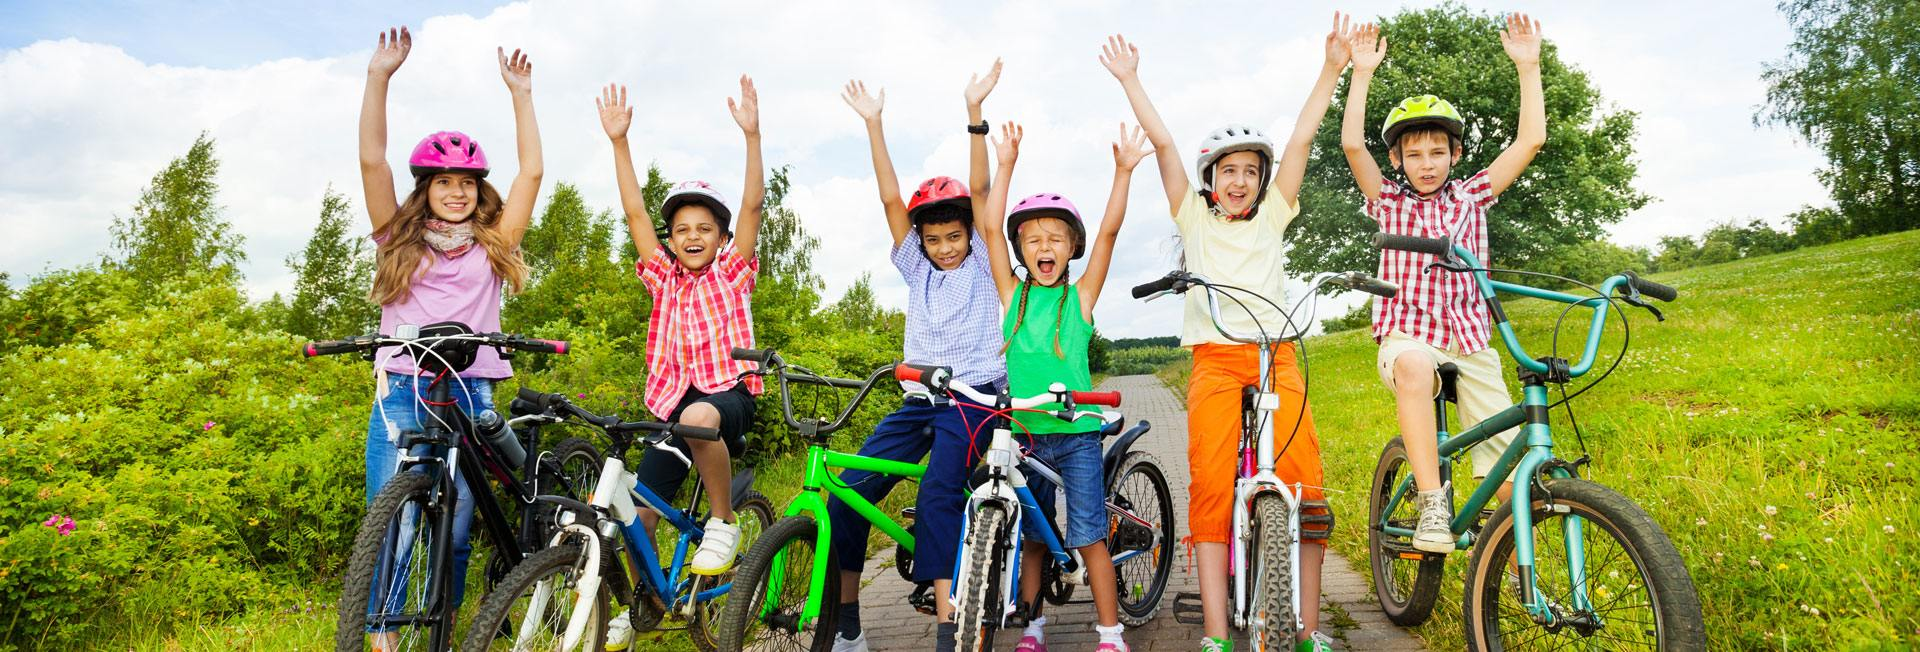 Children on their bikes